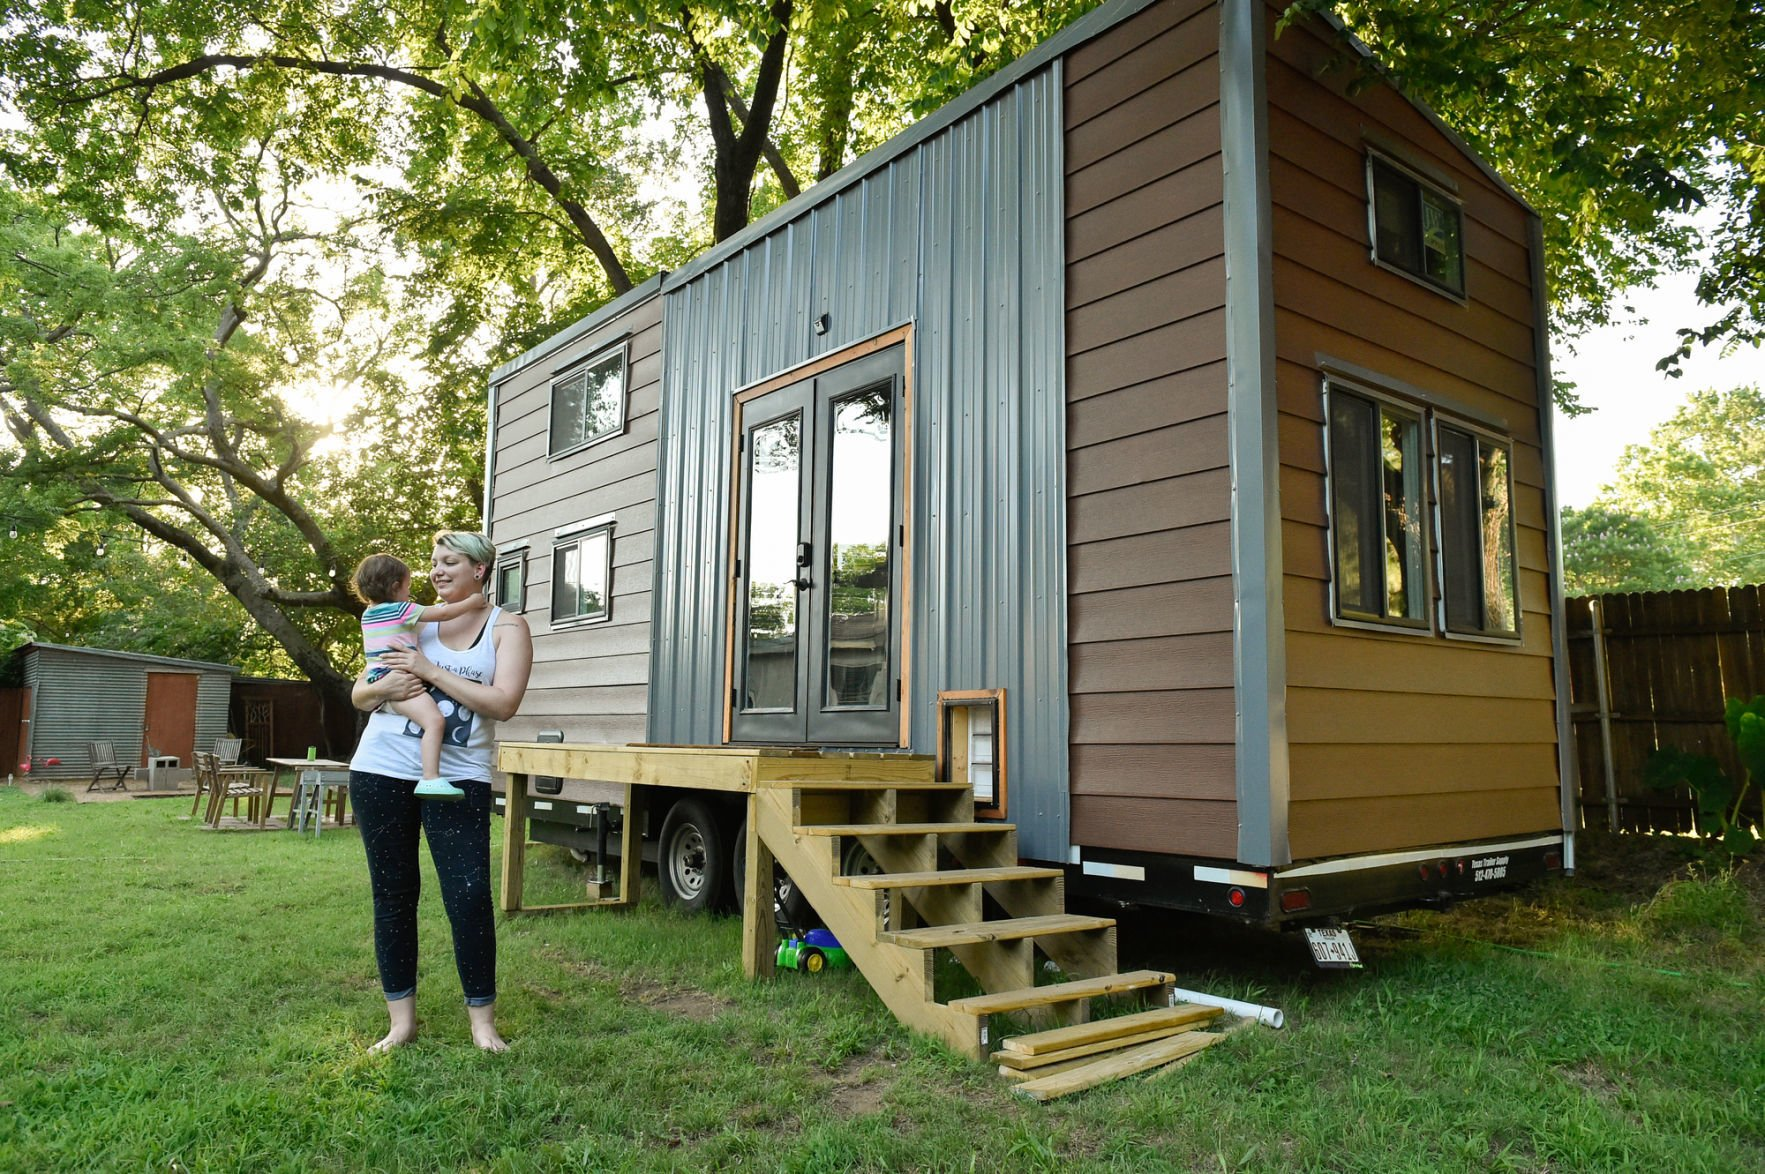 Tiny Homes Poised To Make Big Gains In Denton With City